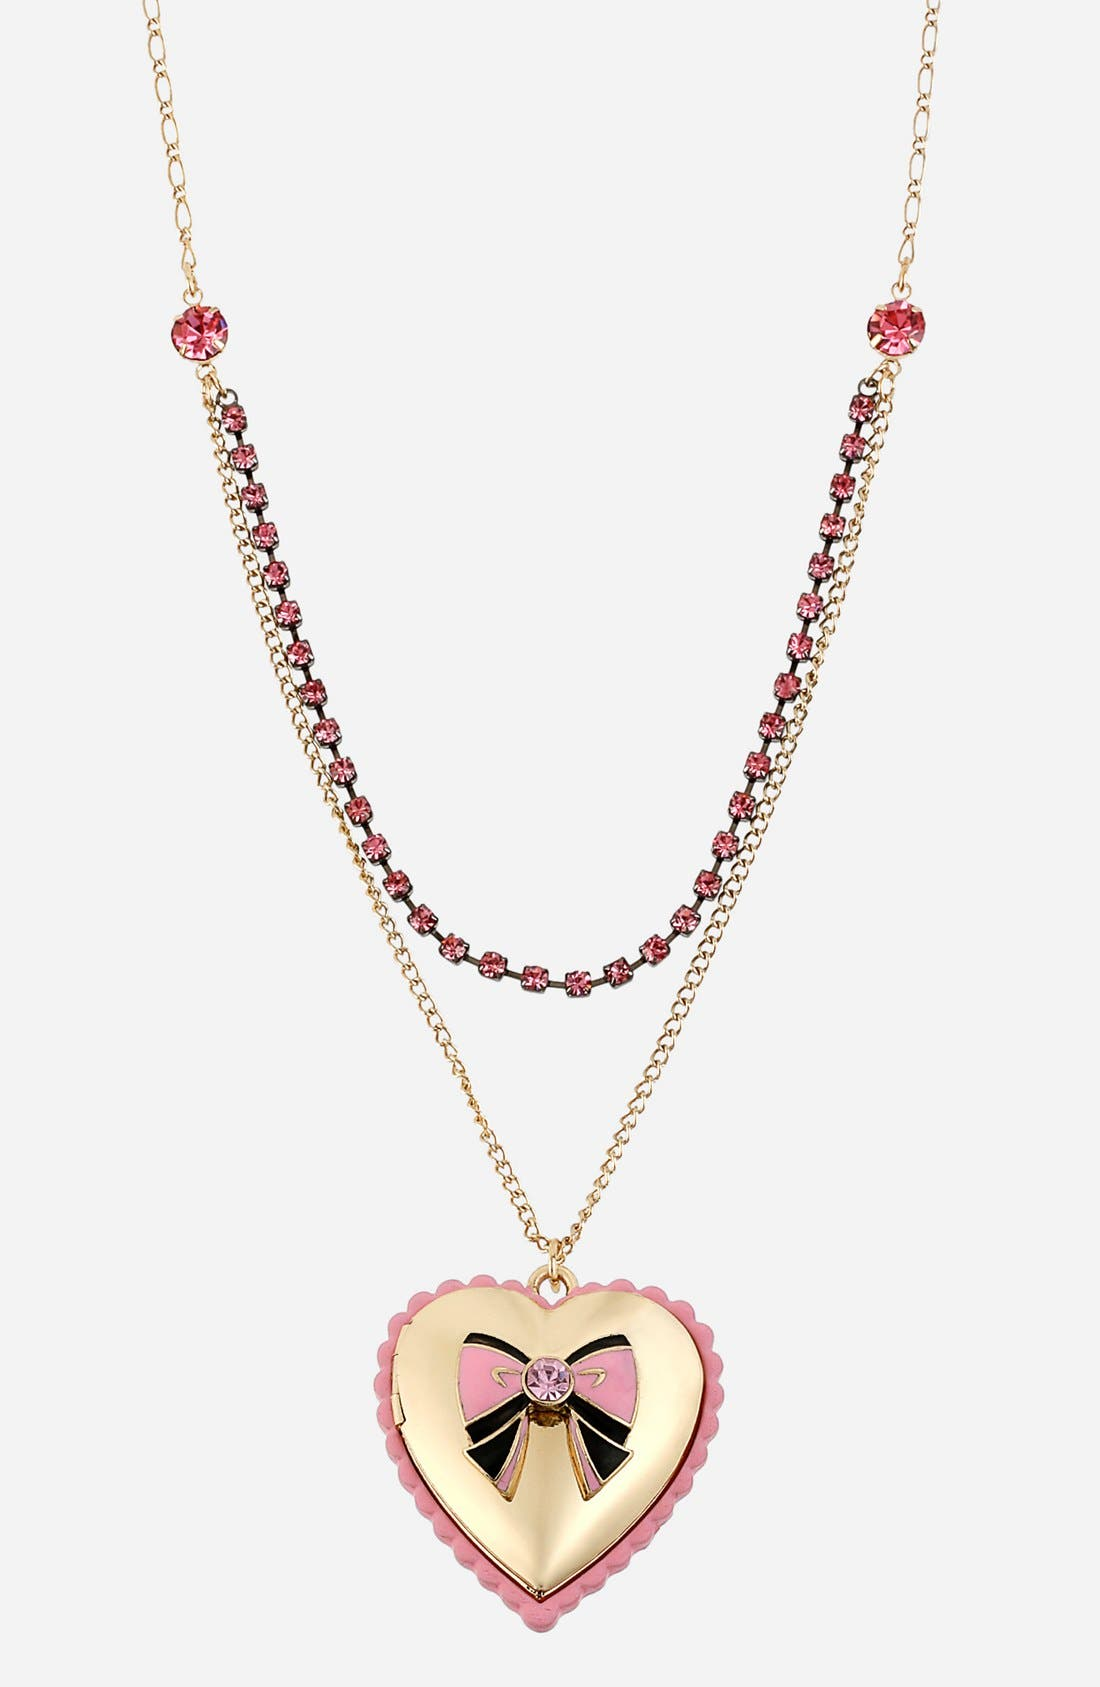 Main Image - Betsey Johnson 'Paris' Heart & Bow Pendant Necklace